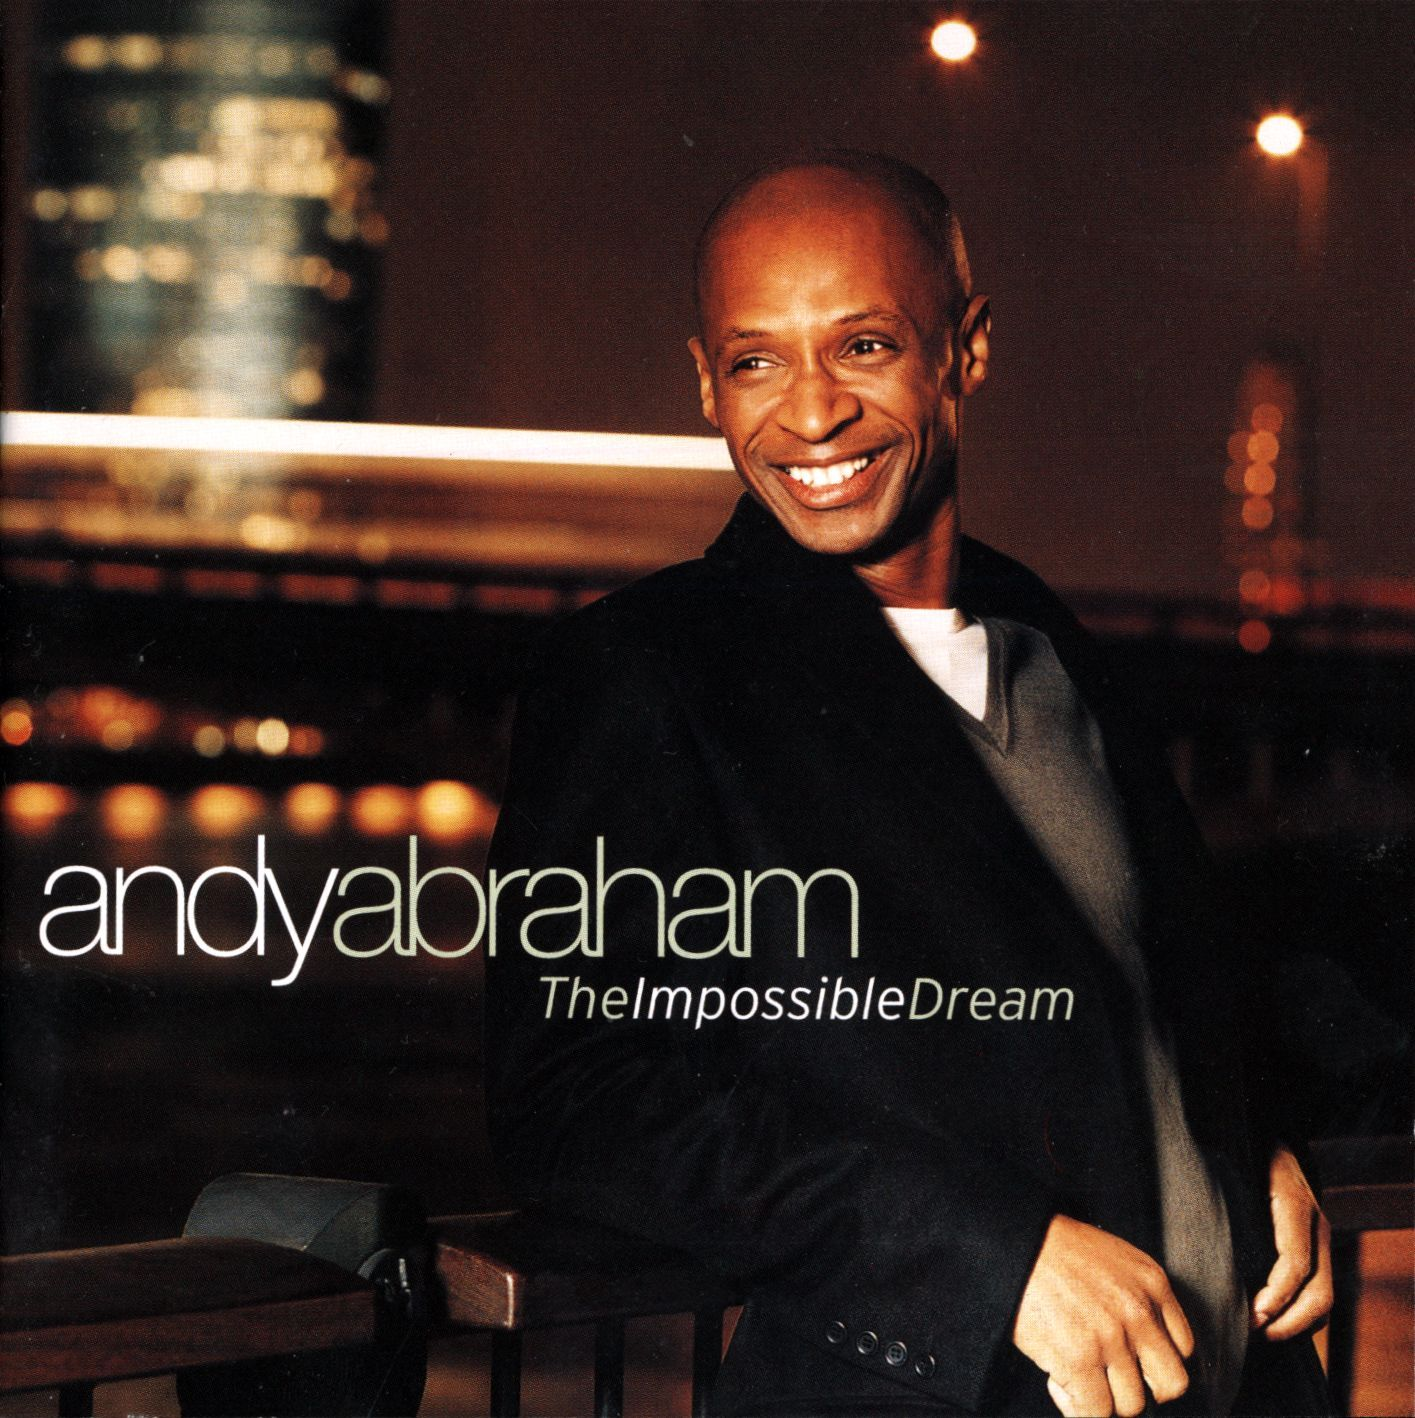 Andy Abraham - The Impossible Dream album cover